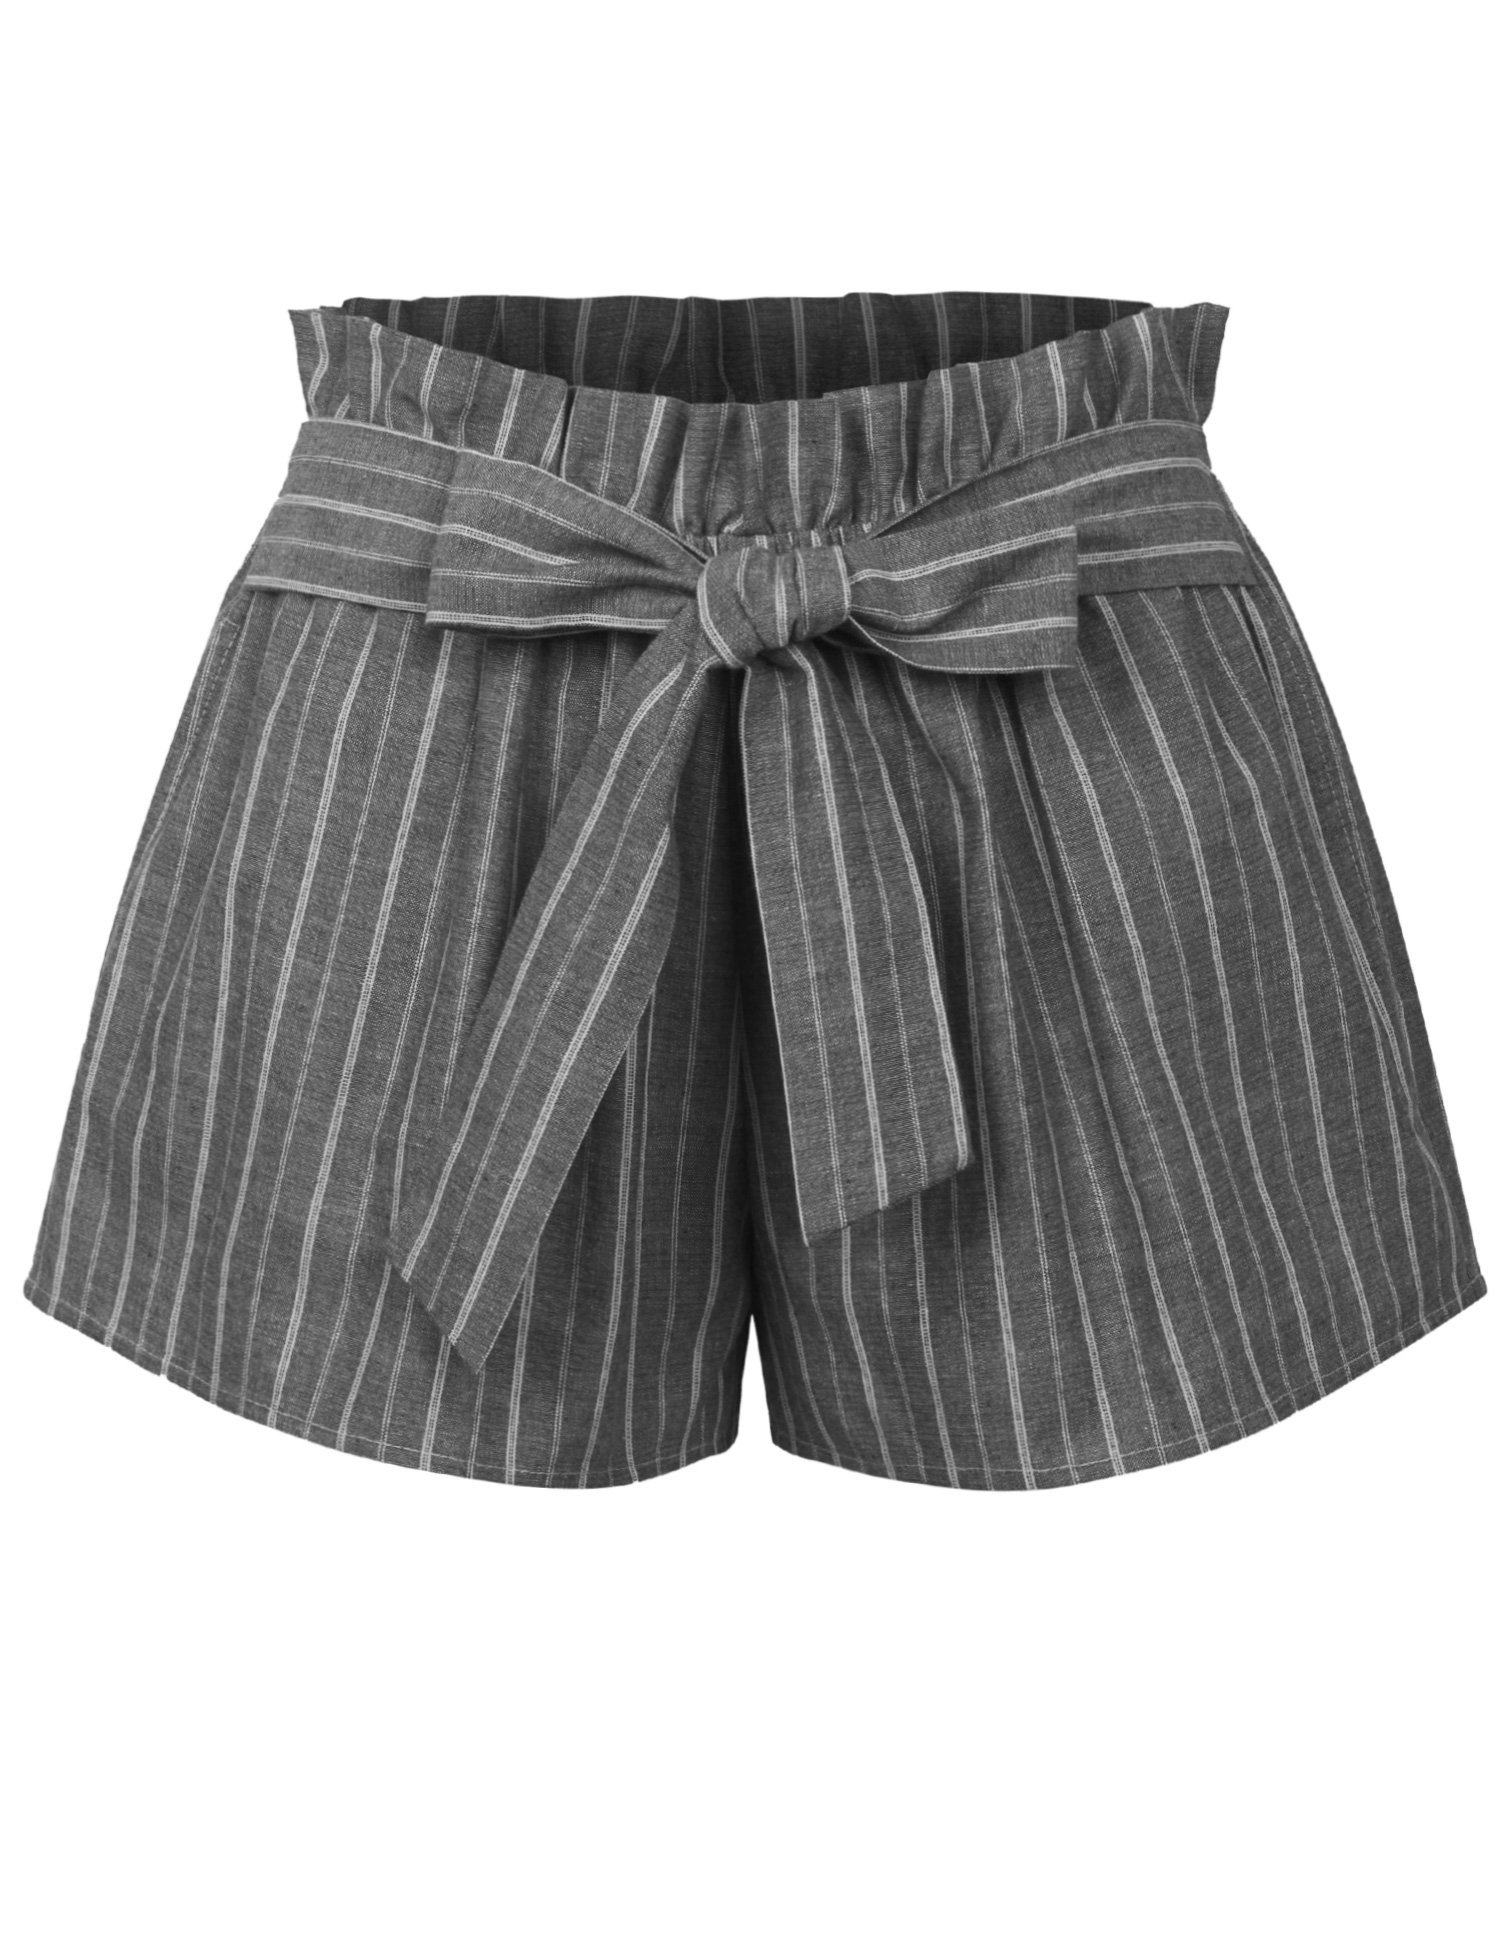 KOGMO Womens Casual Striped Summer Beach Shorts with Self Tie Bow-L-Black